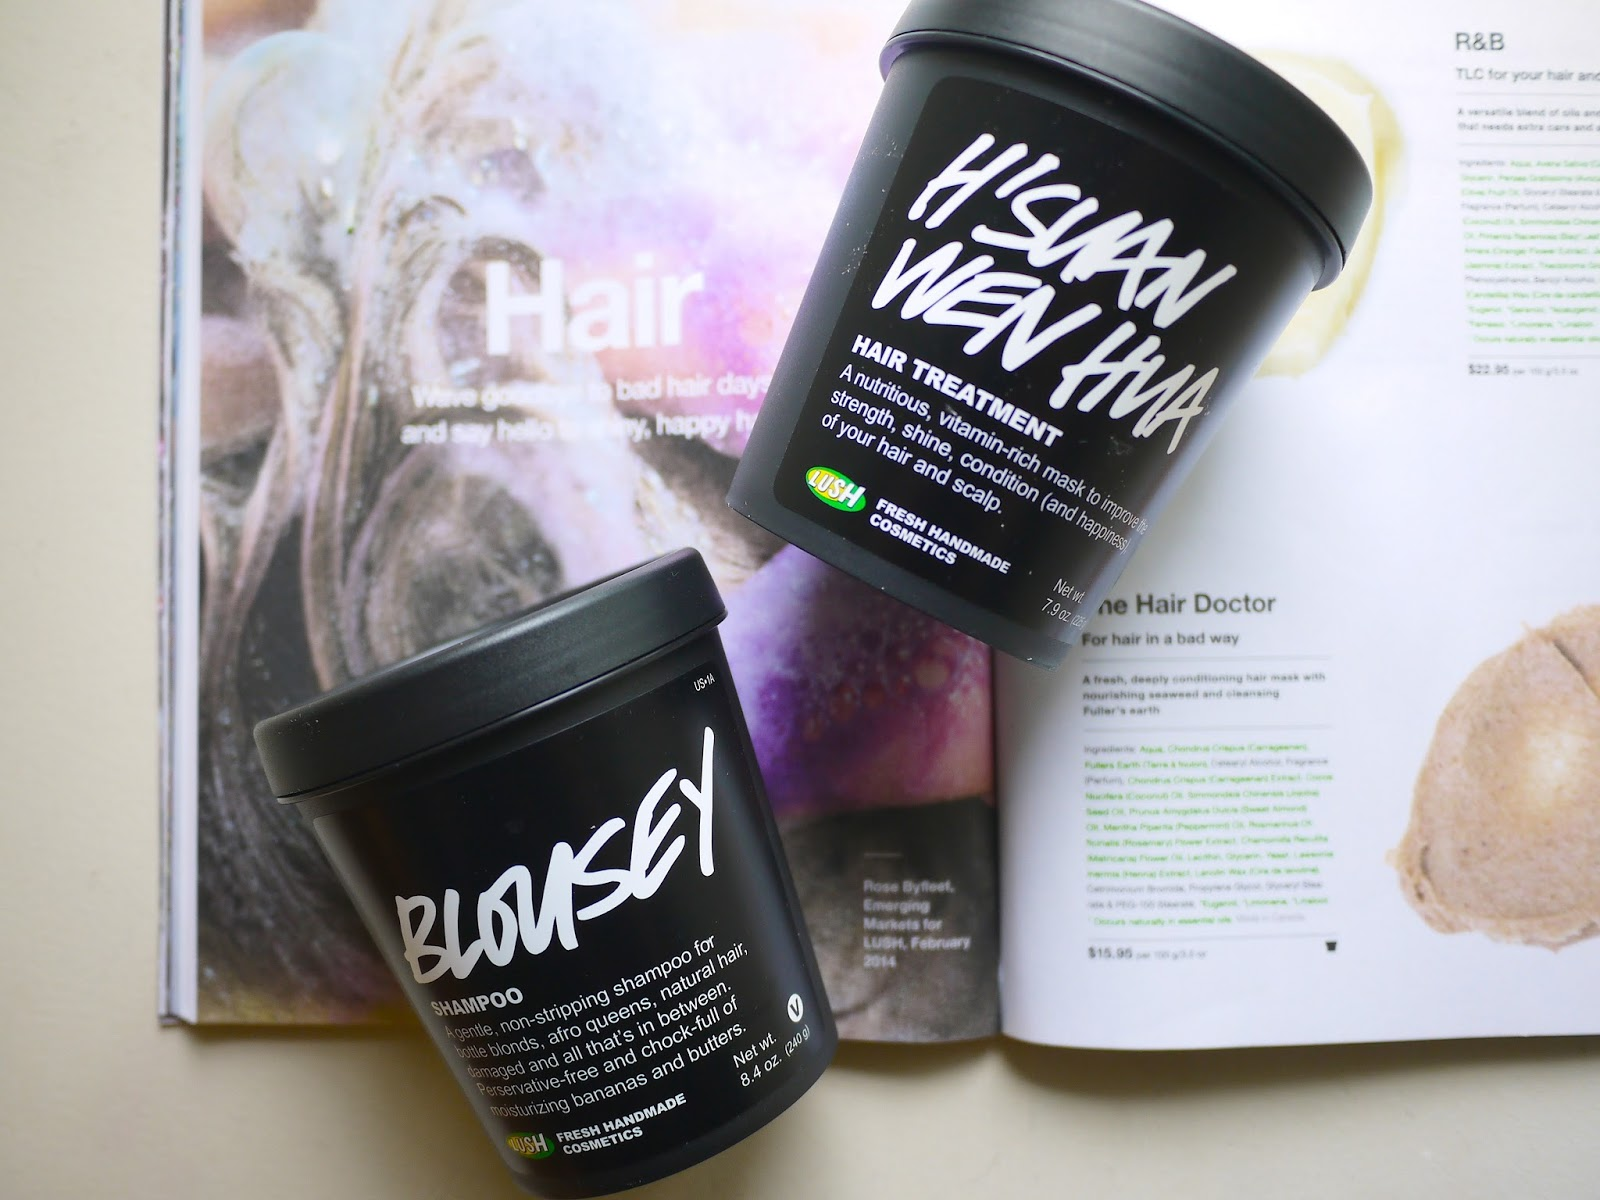 Lush H'suan wen hua hair treatment Blousey shampoo review